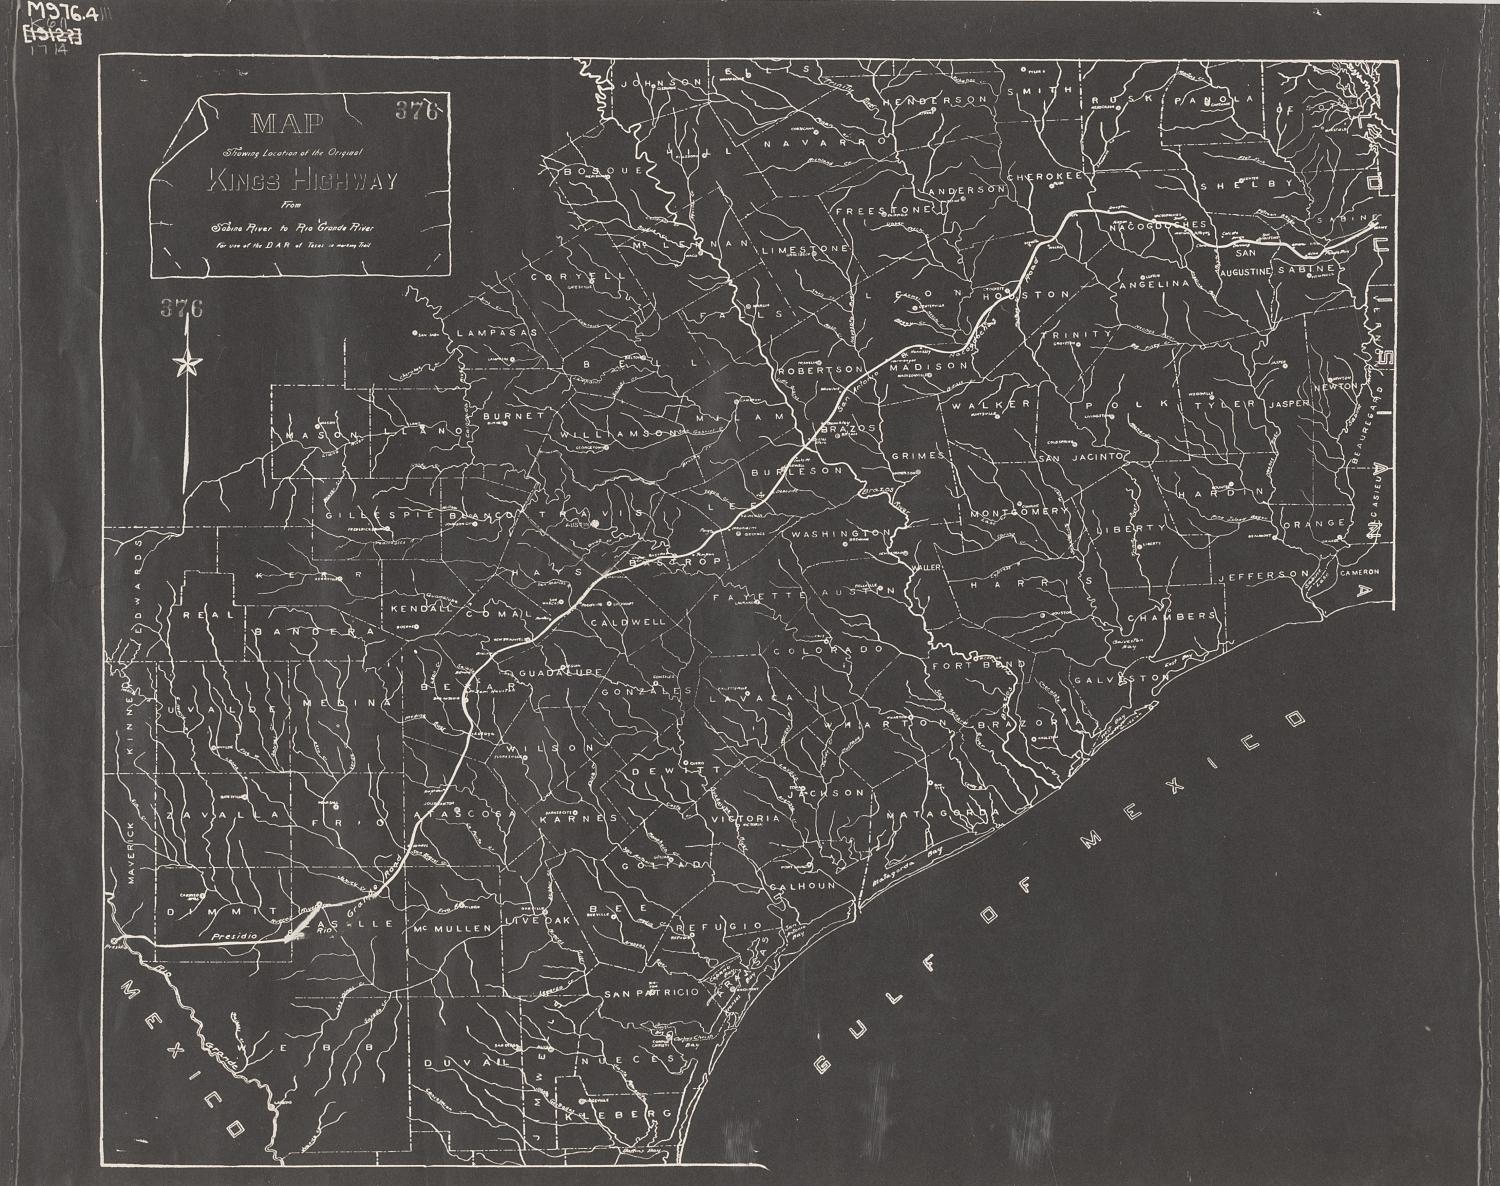 Map showing location of the original King's Highway from Sabine River to Rio Grande River, marked by DAR of Texas.                                                                                                      [Sequence #]: 1 of 1